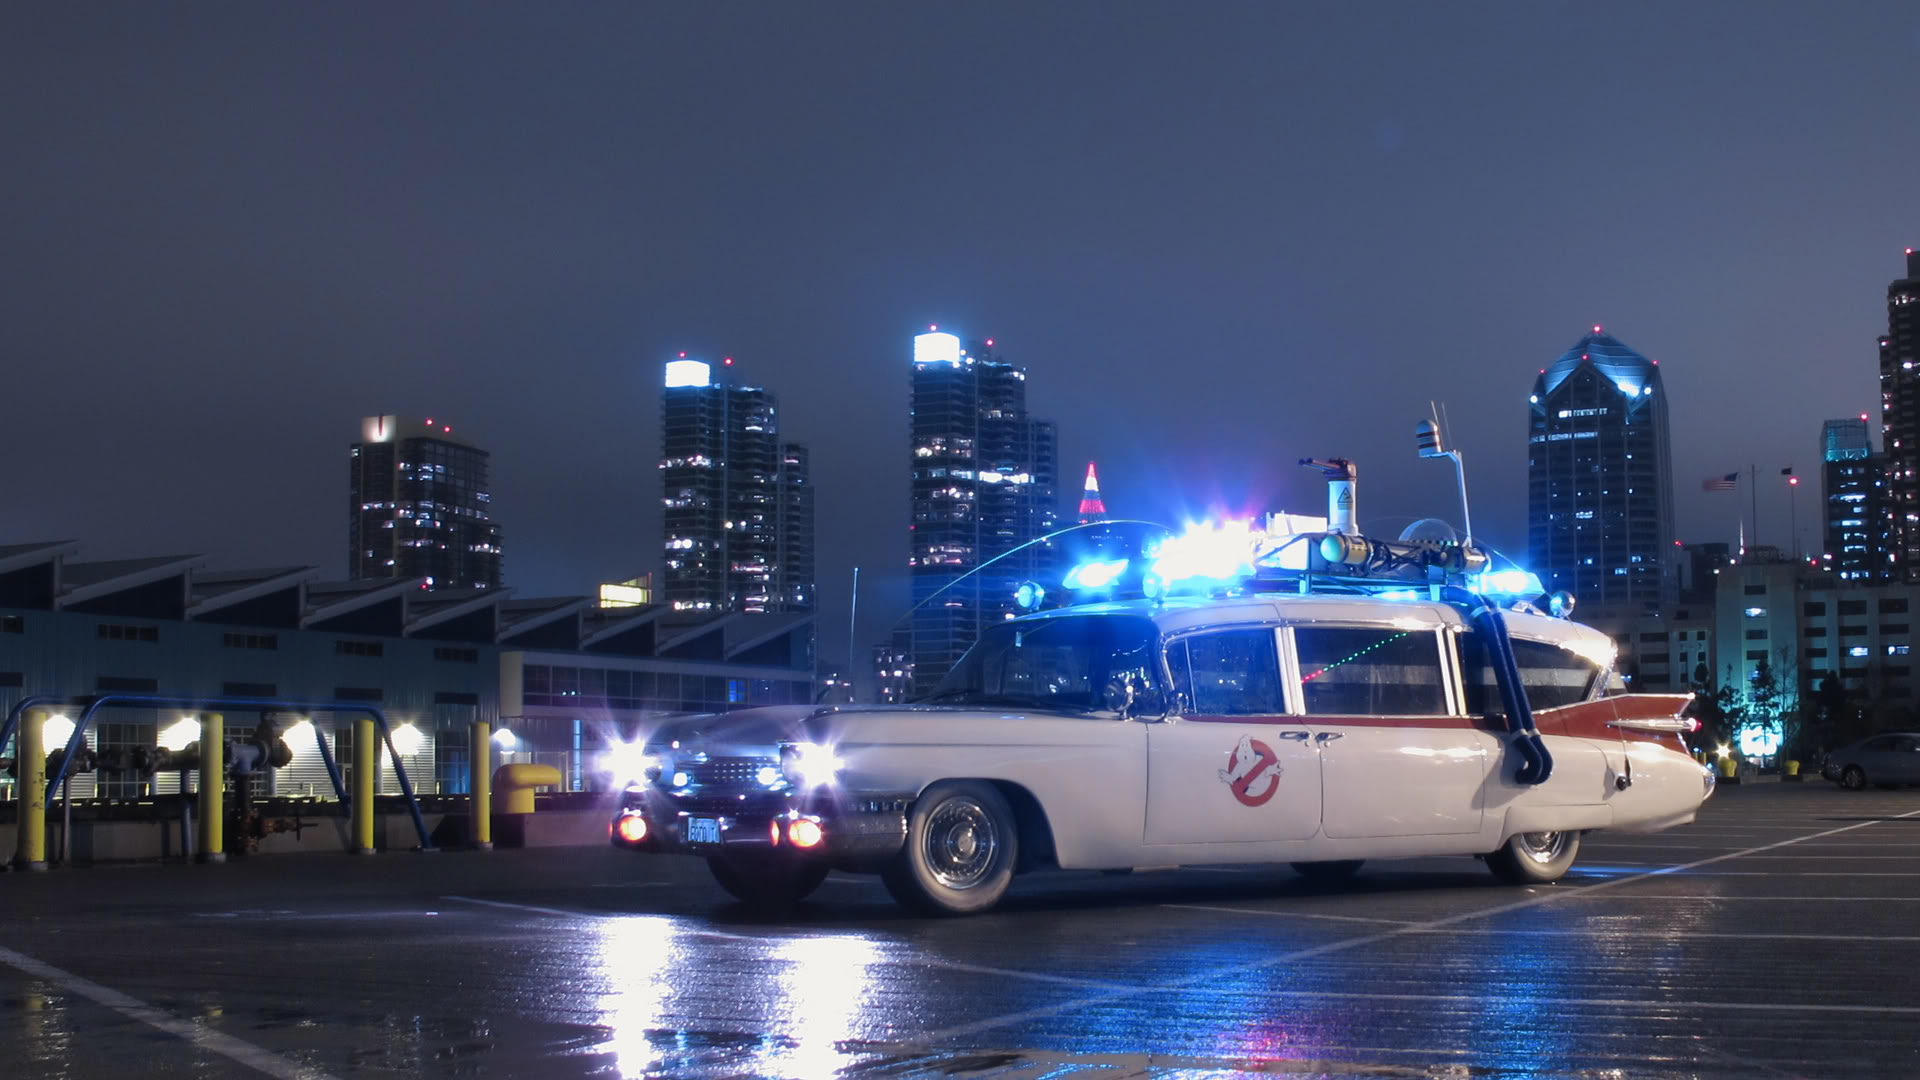 ecto 1 ghostbusters wallpaper - photo #12